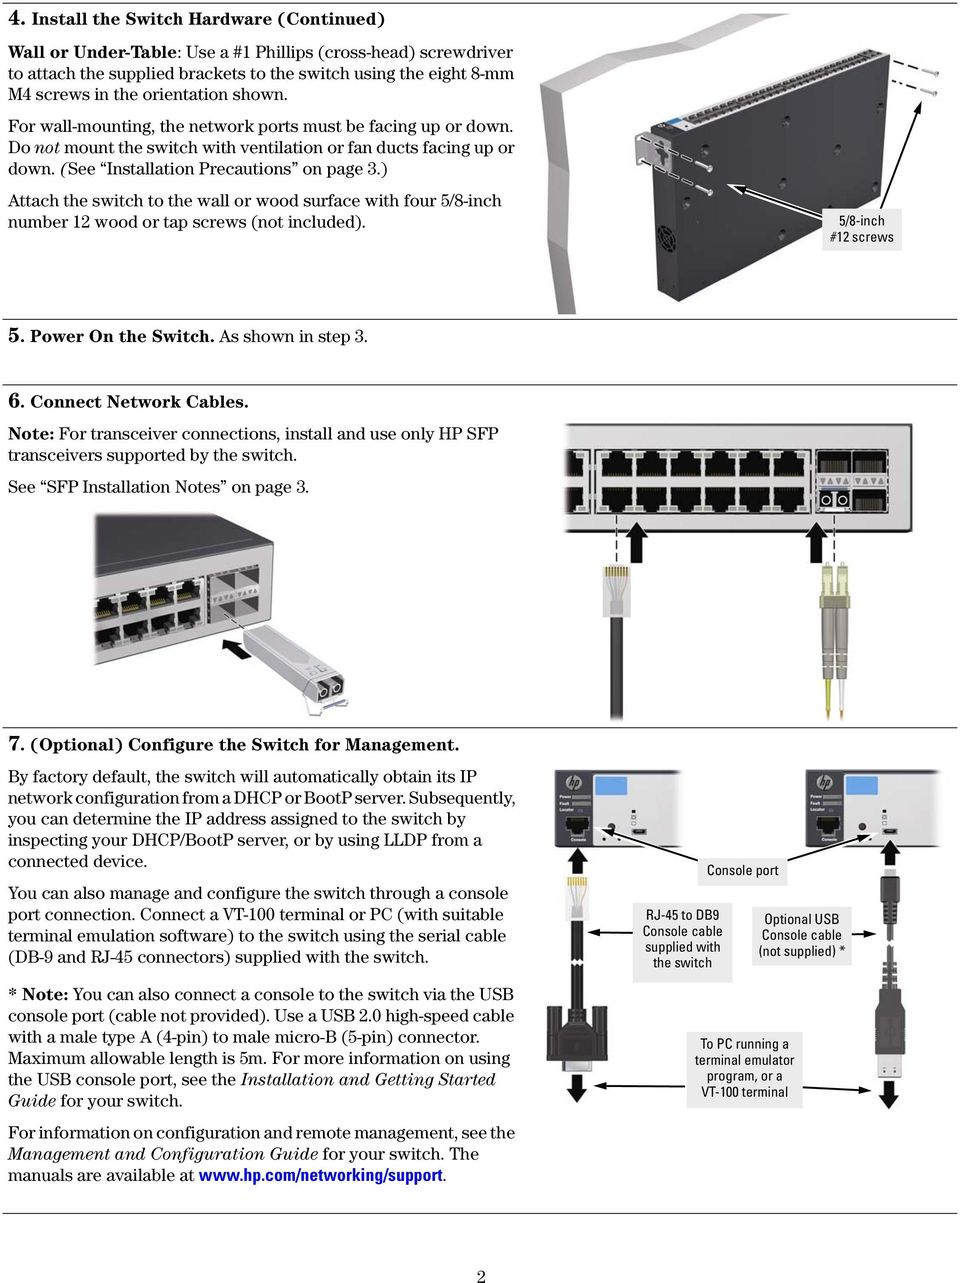 Hp Port And 48 Switches Quick Setup Guide Pdf Power Over Ethernet Wiring Diagram Note The Dmx Attach Switch To Wall Or Wood Surface With Four 5 8